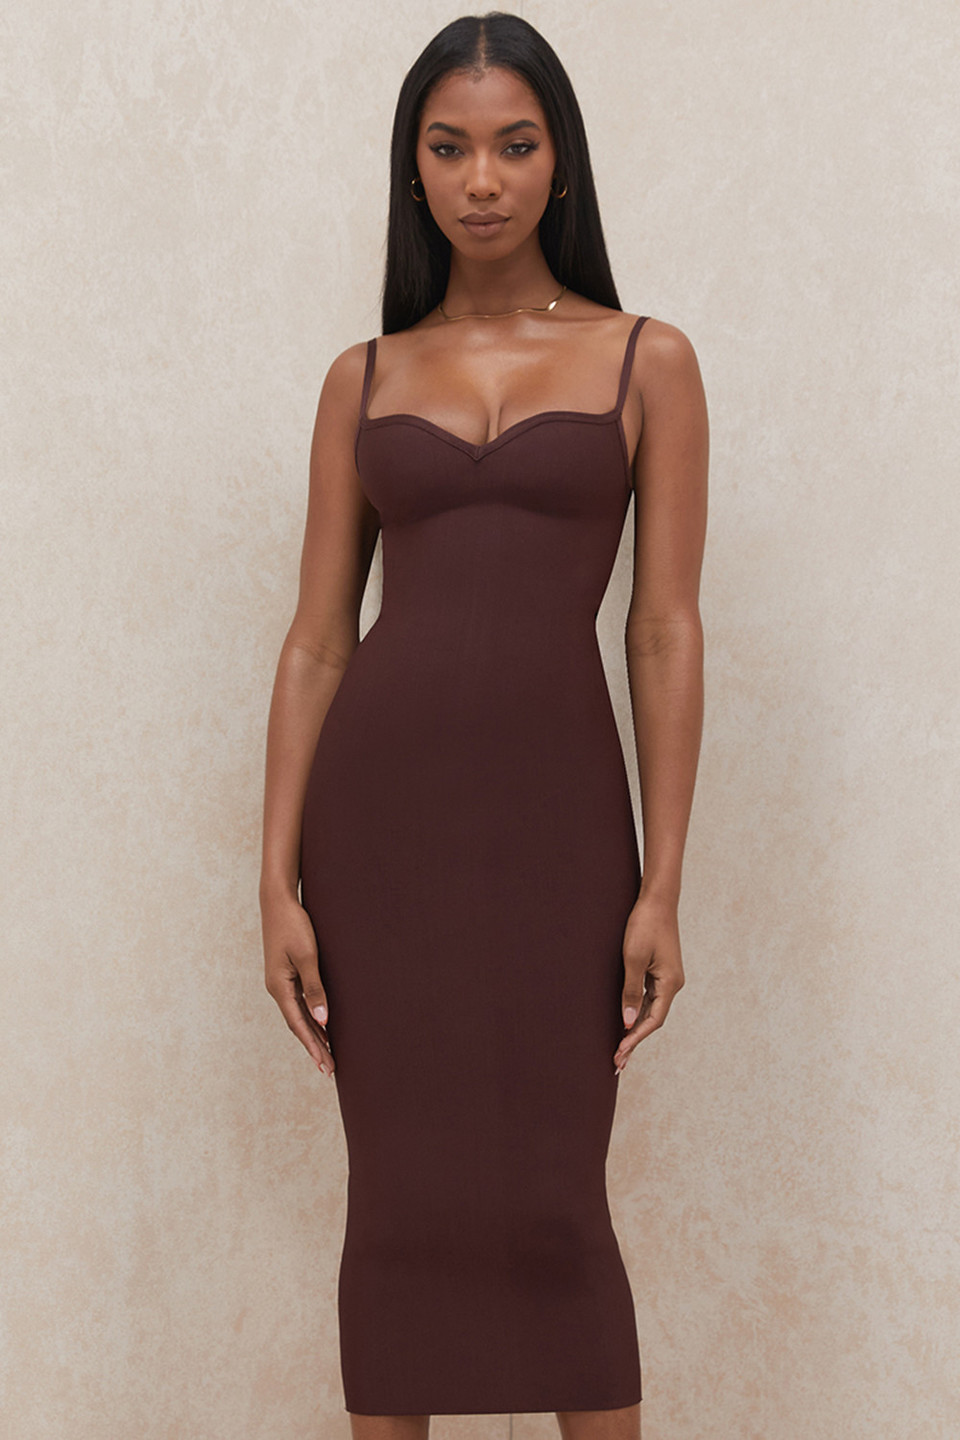 Domenica Raisin Sweetheart Neckline Bandage Dress